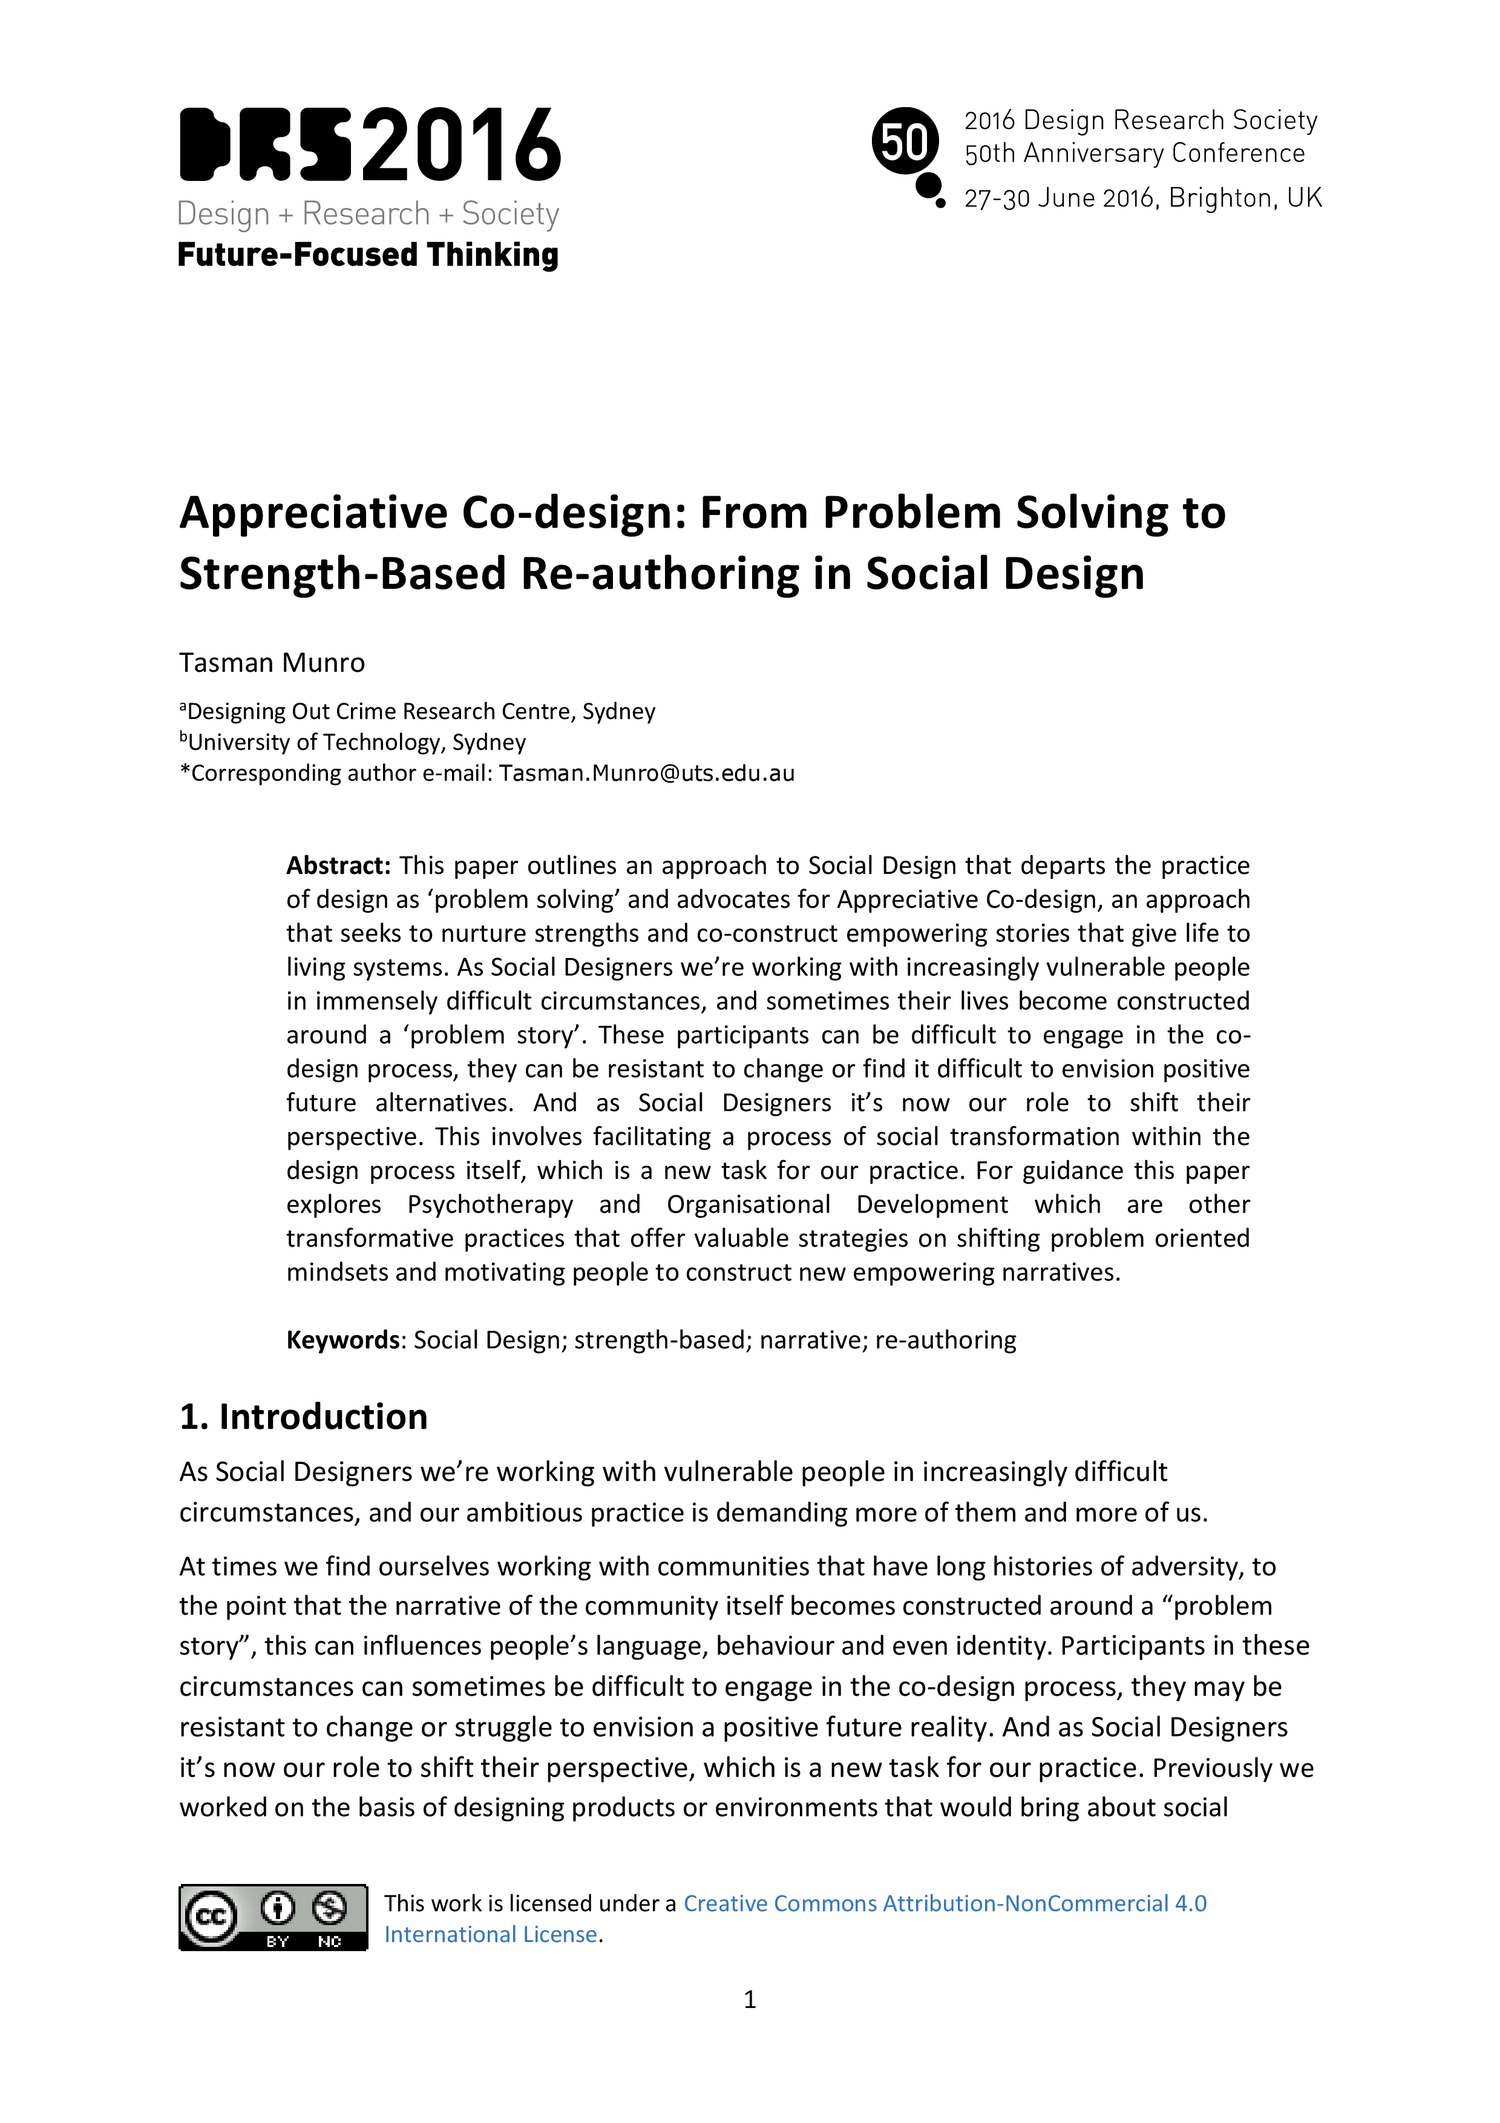 Appreciative Co Design From Problem Solving To Strength Based Re Authoring In Social Design Drs2016